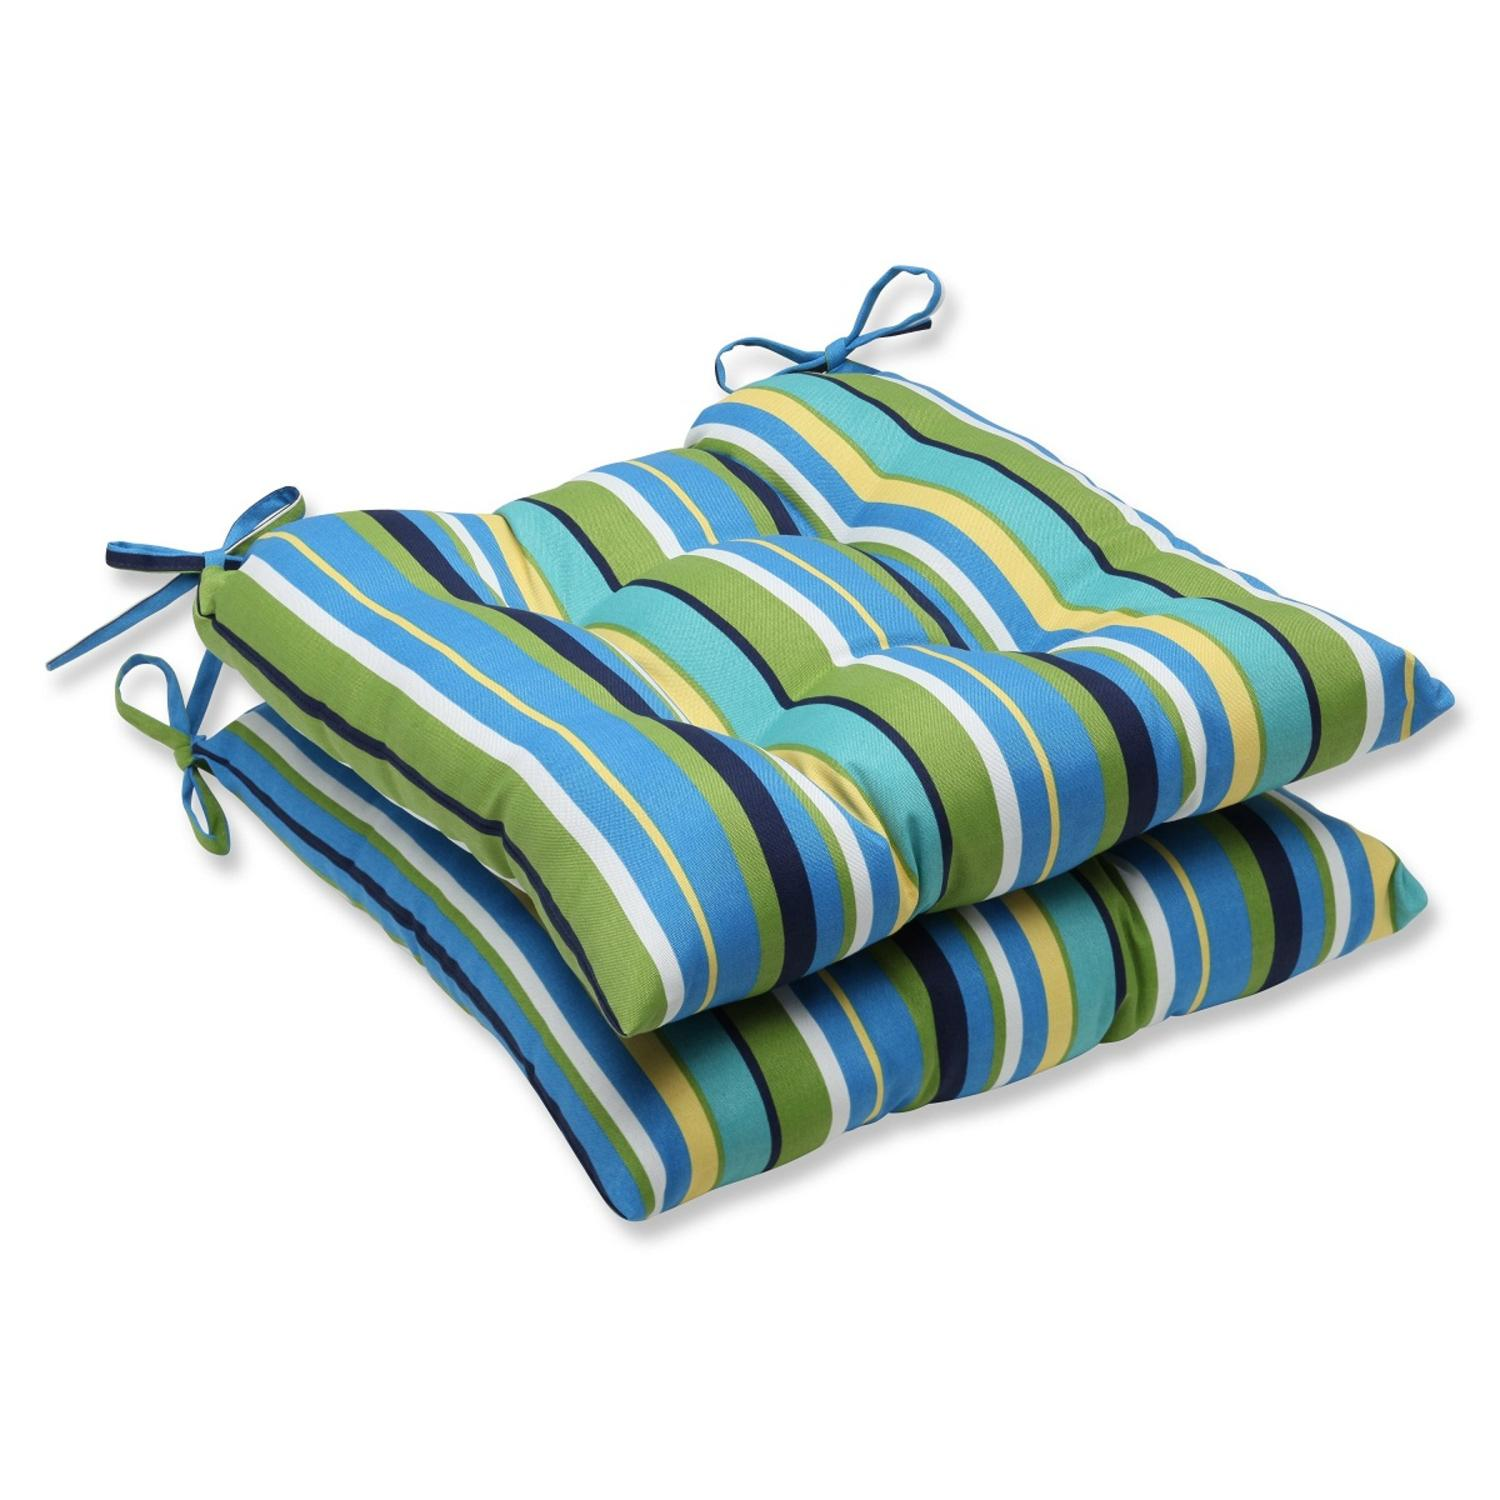 Set Of 2 Strisce Luminose Blue, Green U0026 Yellow Striped Patio Wrought Iron  Chair Cushions